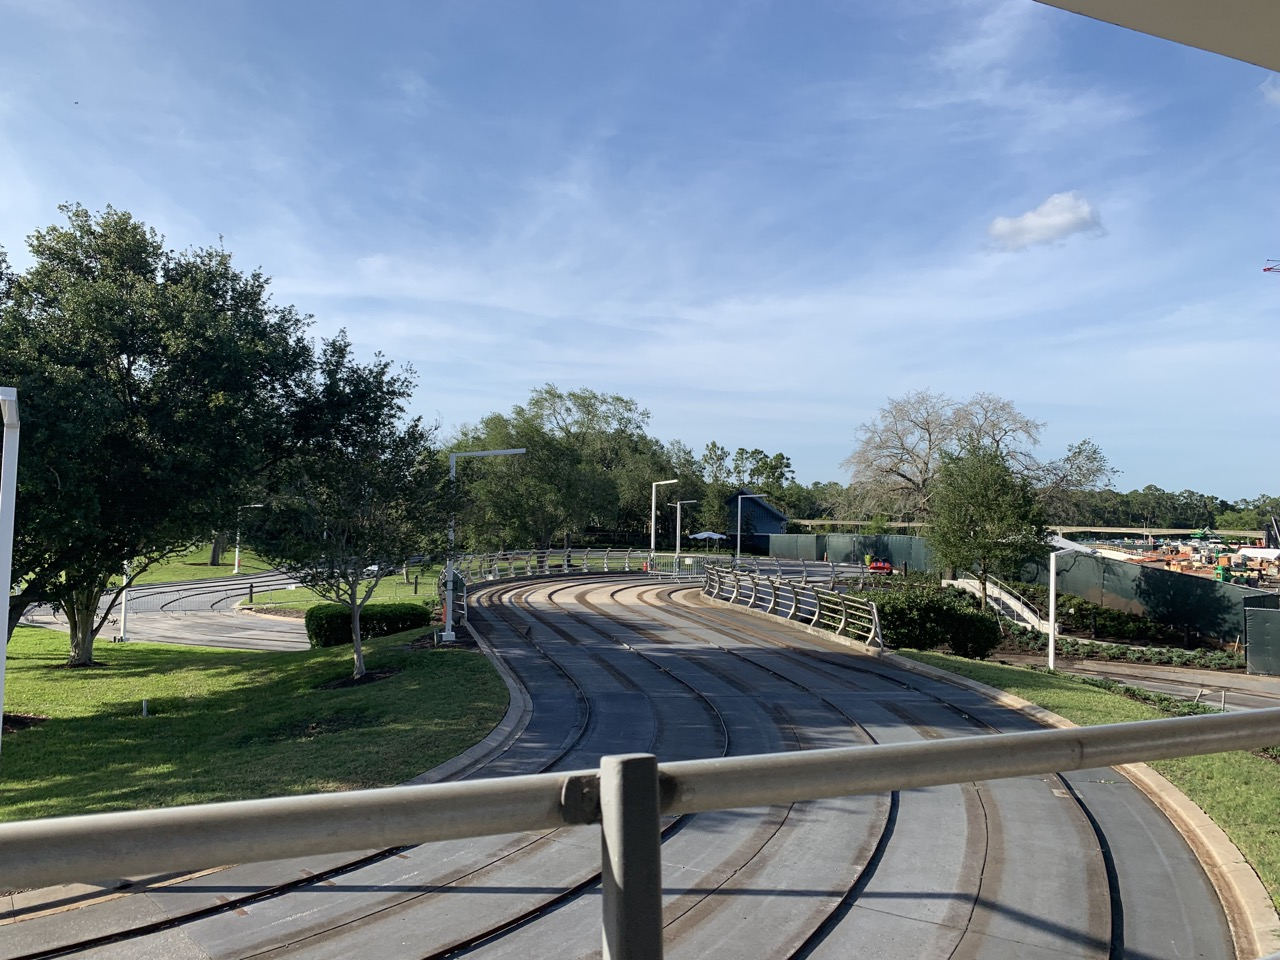 disney world trip report early summer 2019 day five construction 9.jpeg